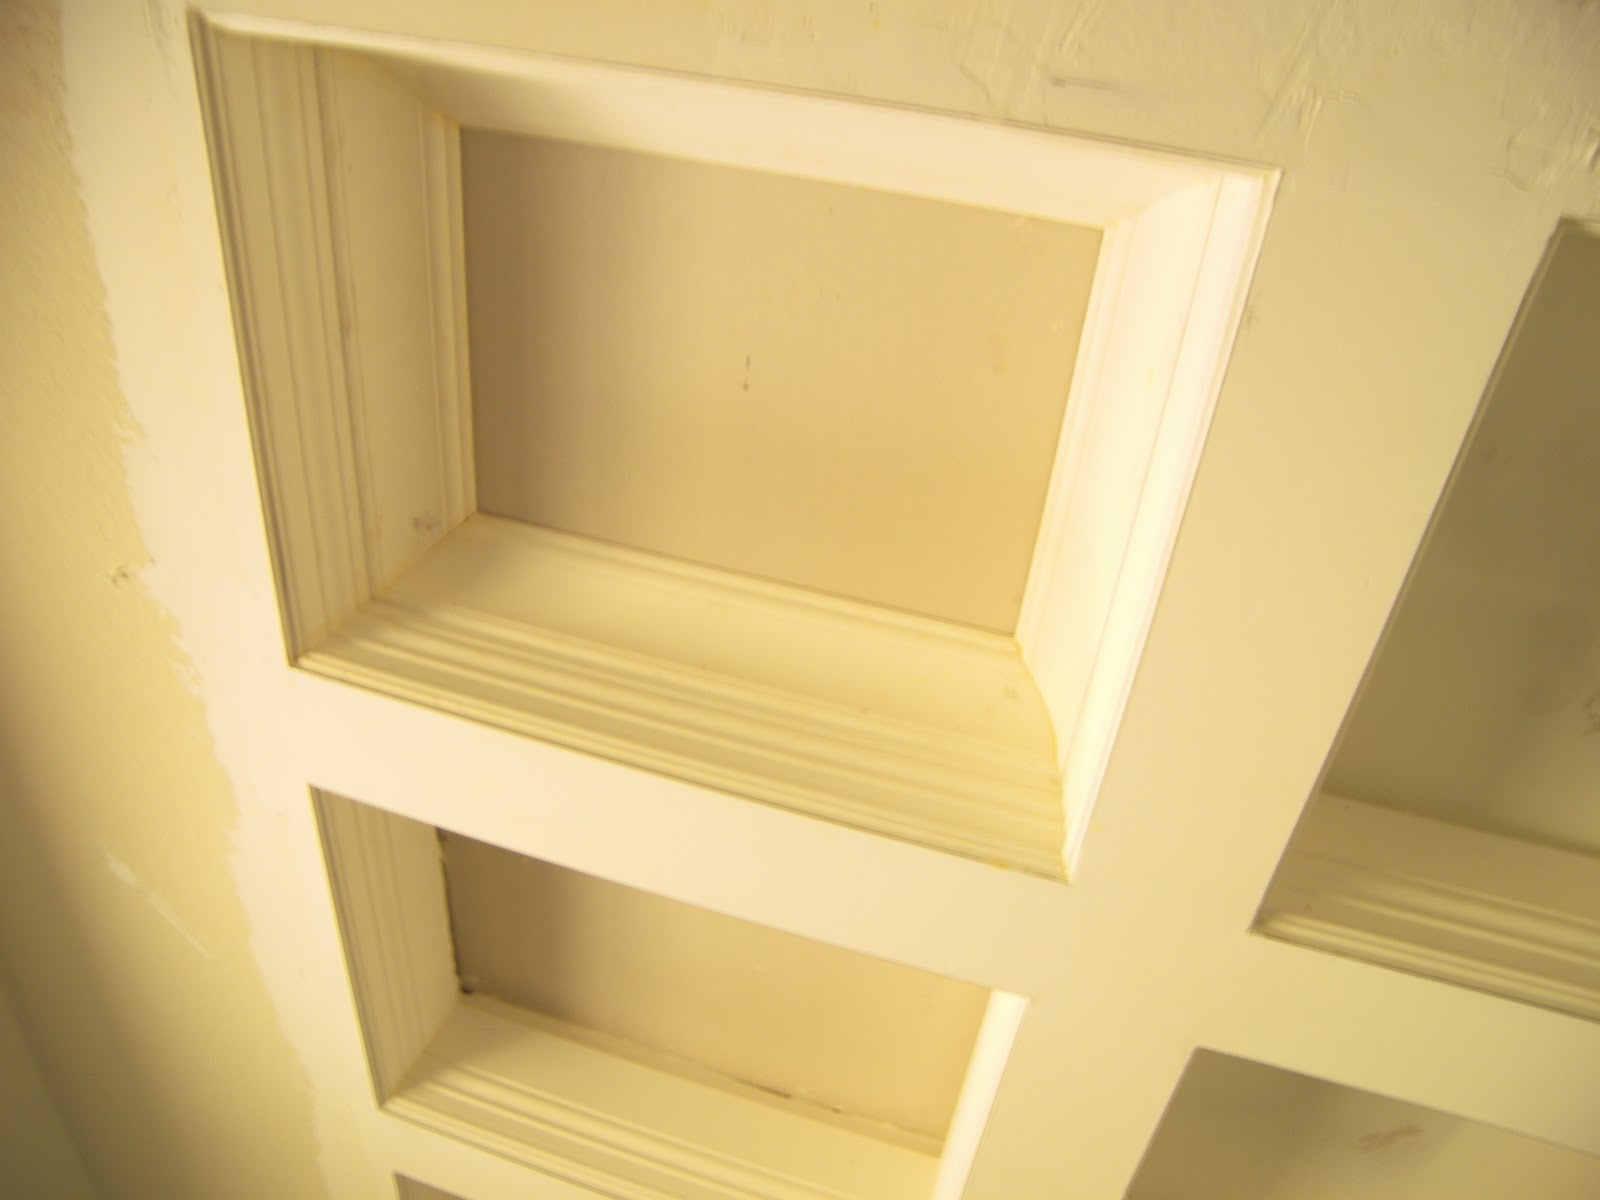 http://1.bp.blogspot.com/_cl7Y-yqco4c/TKJ_v2Zu4YI/AAAAAAAAAmM/hmhjAG7WRQ8/s1600/coffered+ceiling+pats+office.jpg